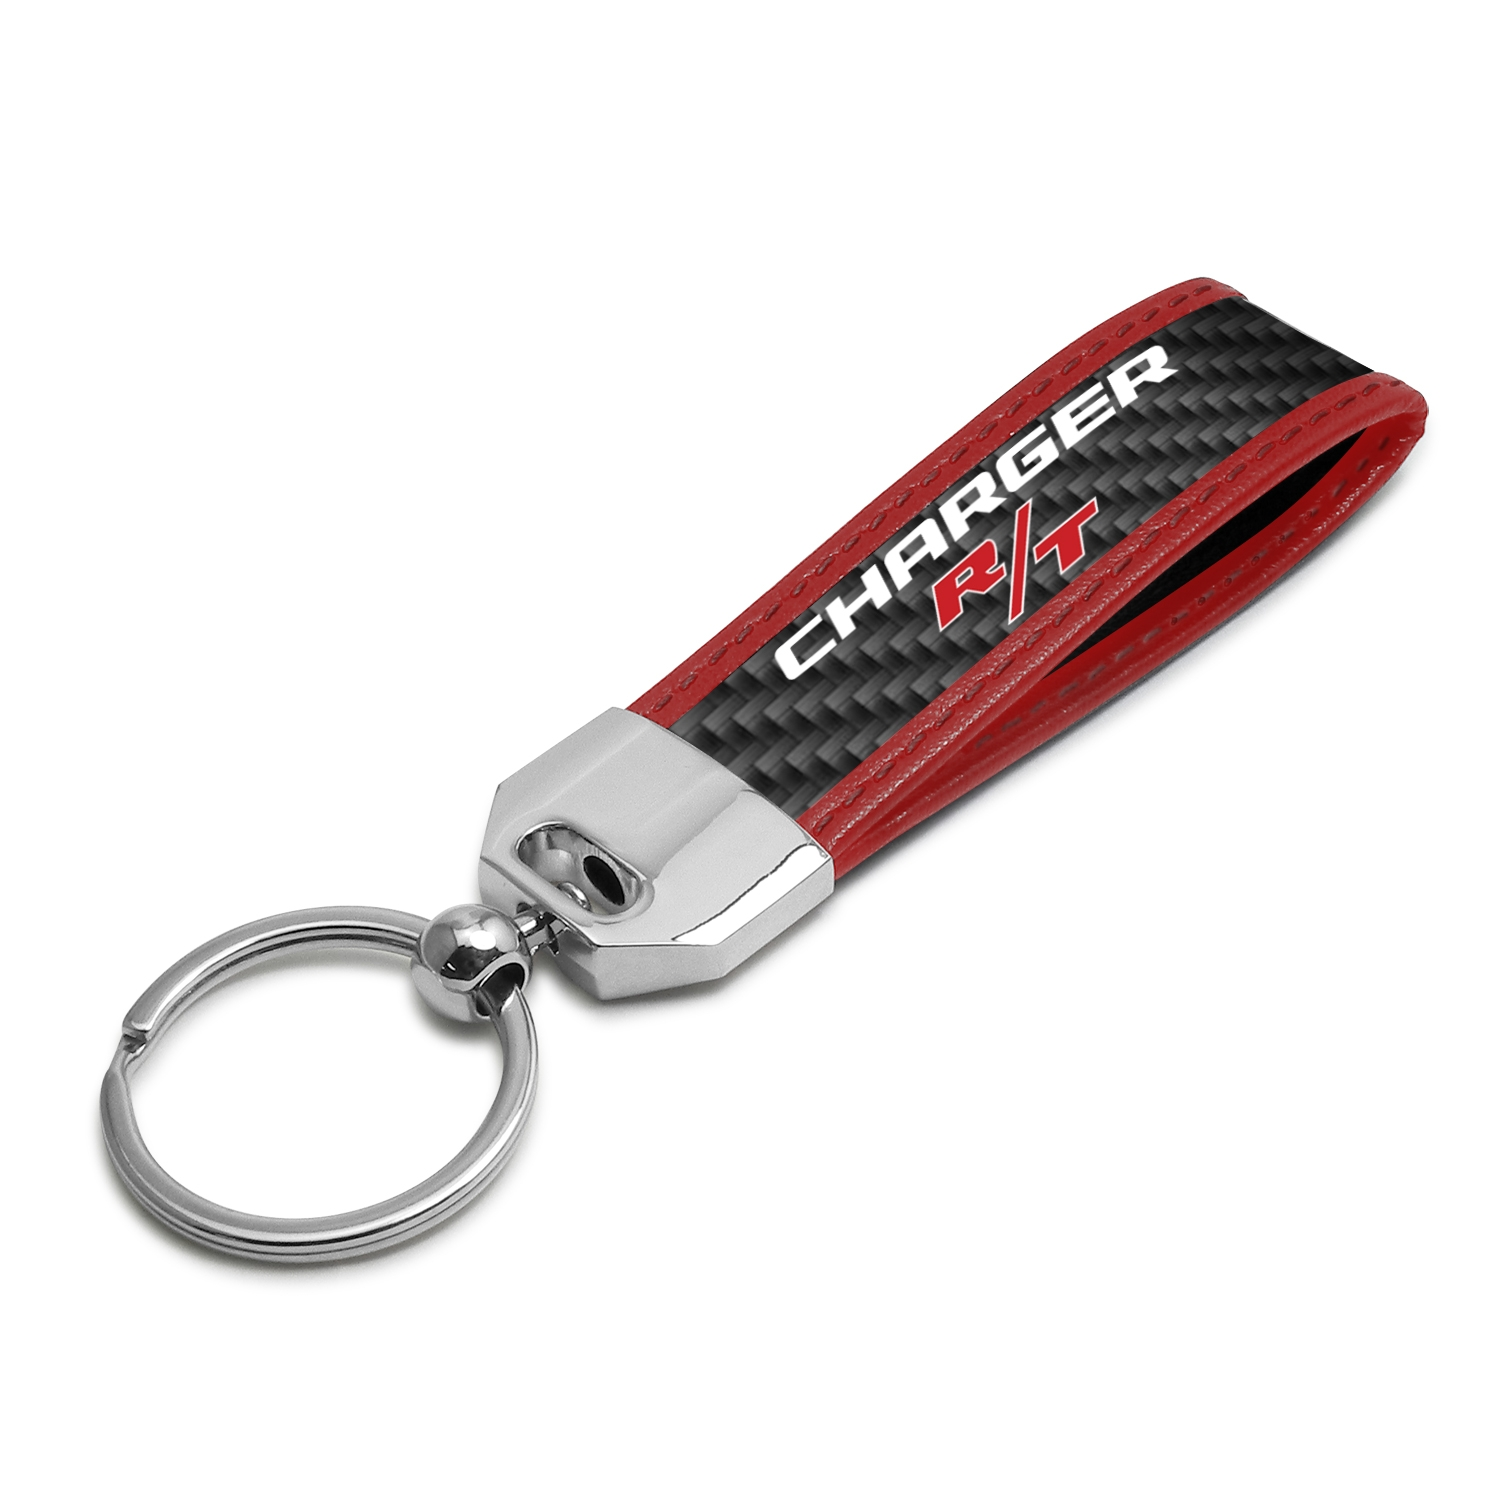 Dodge Charger R/T Real Carbon Fiber Strap Key Chain with Red Edge